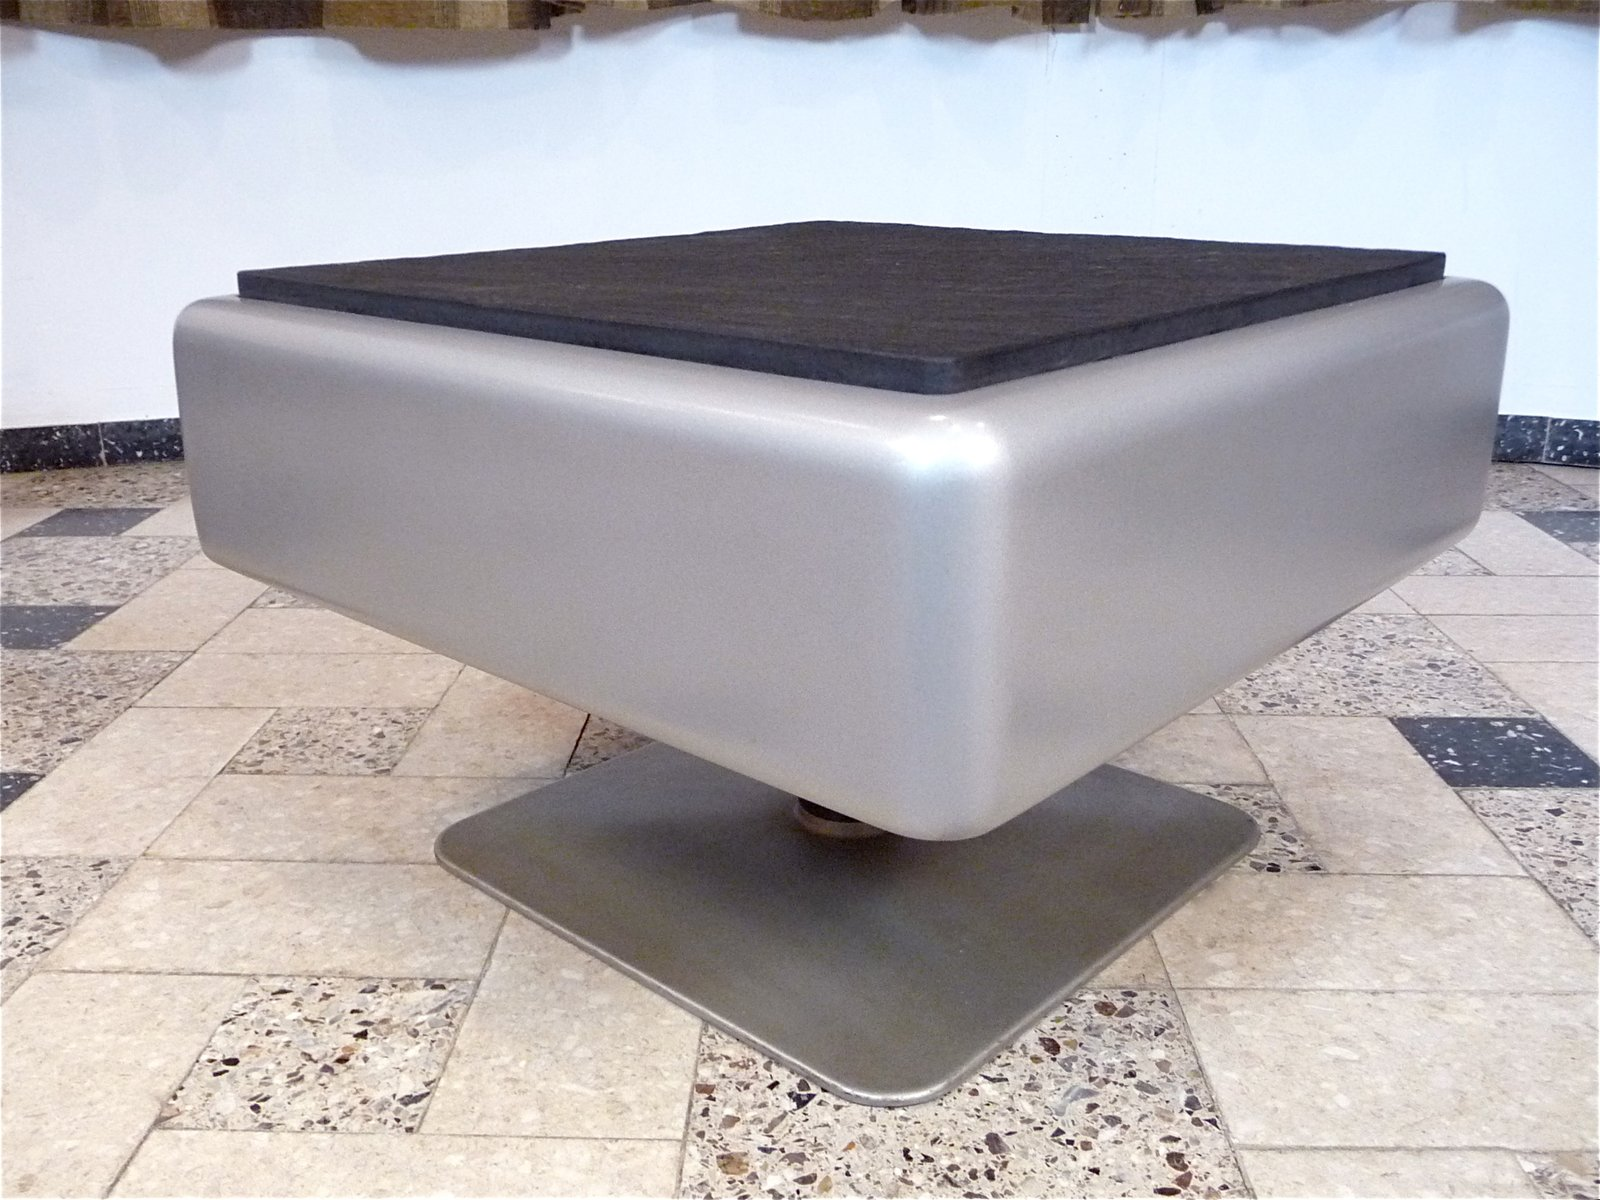 System 350 Lounge Chairs Amp Side Table By Herbert Hirche